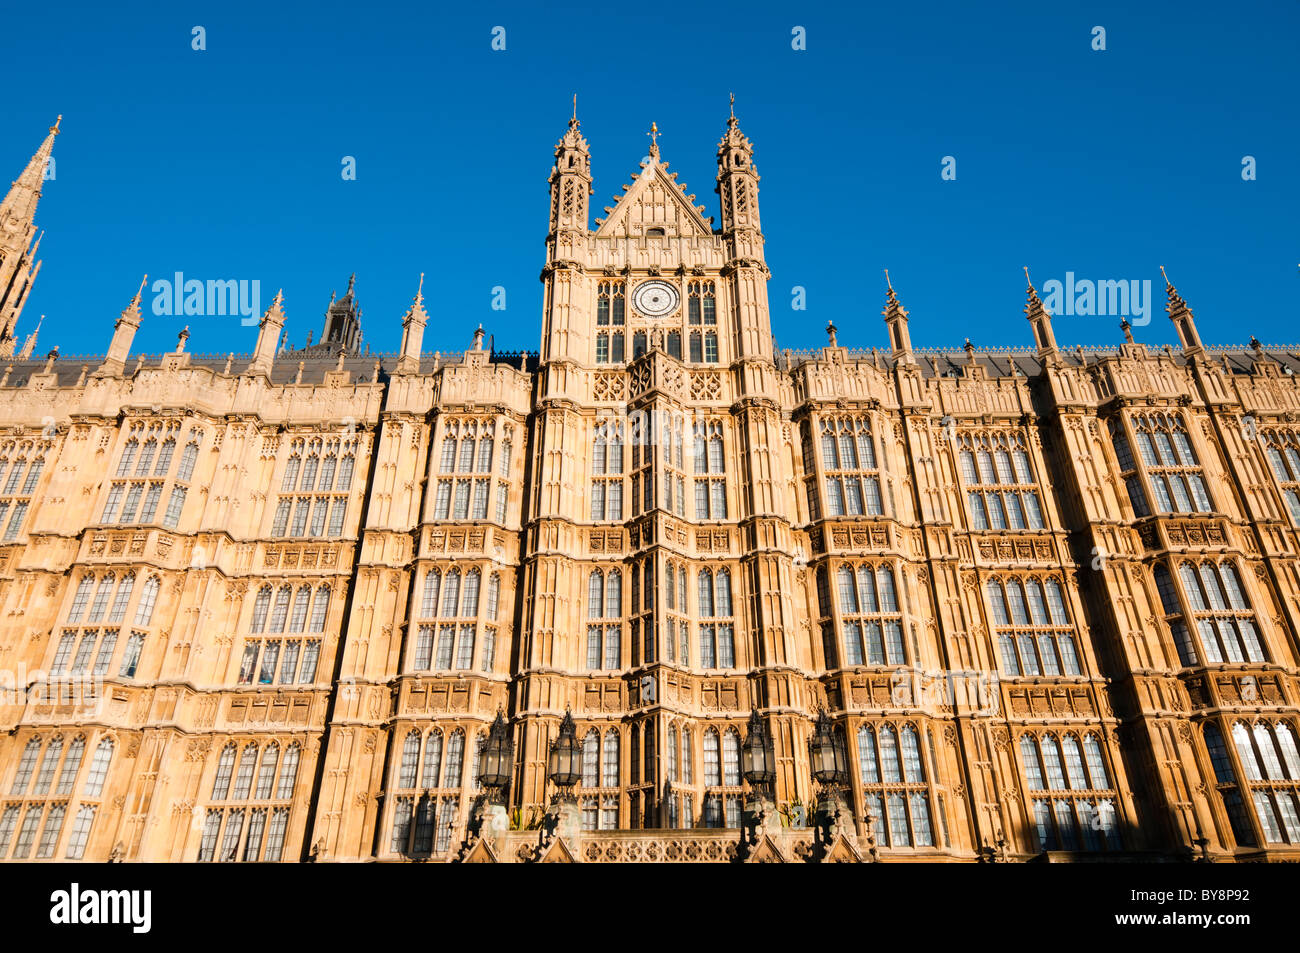 House of Lords - Stock Image